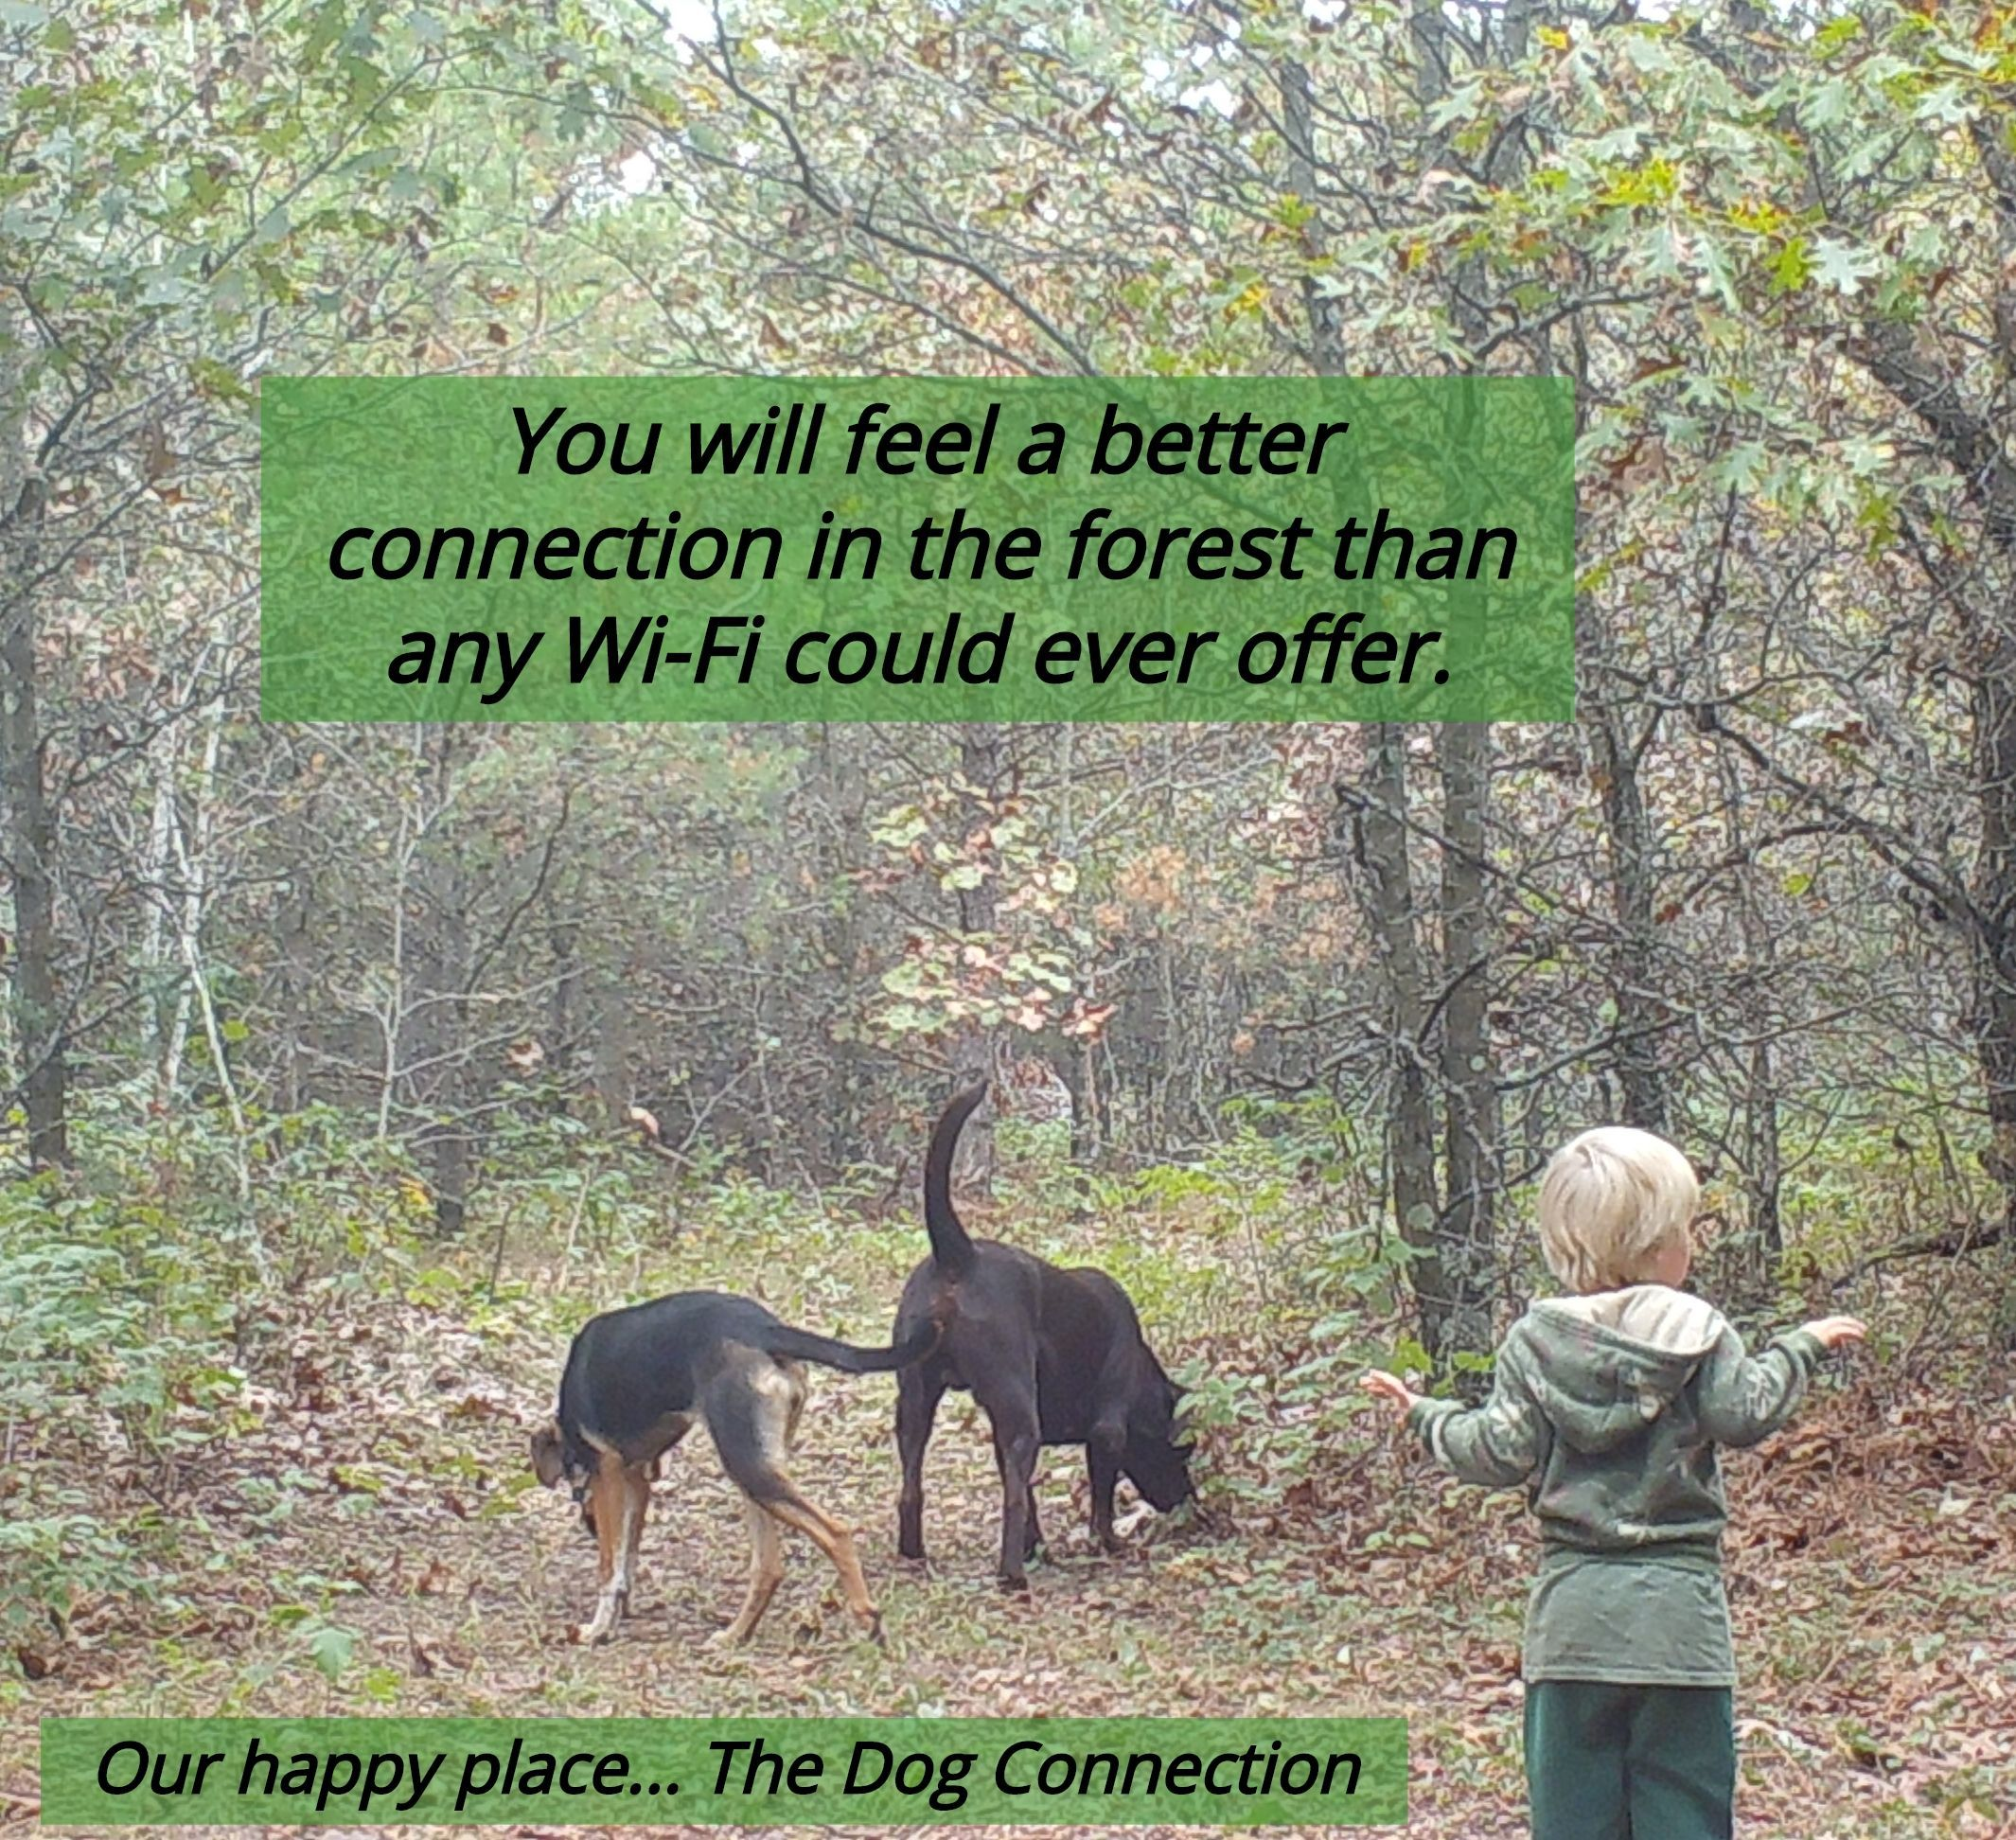 Take Time To Walk In The Woods With Your Dogs Barefoot Is Even Better Dogs Grounding Doglover Labrador Dog Blog Dog Quotes Dog Lovers